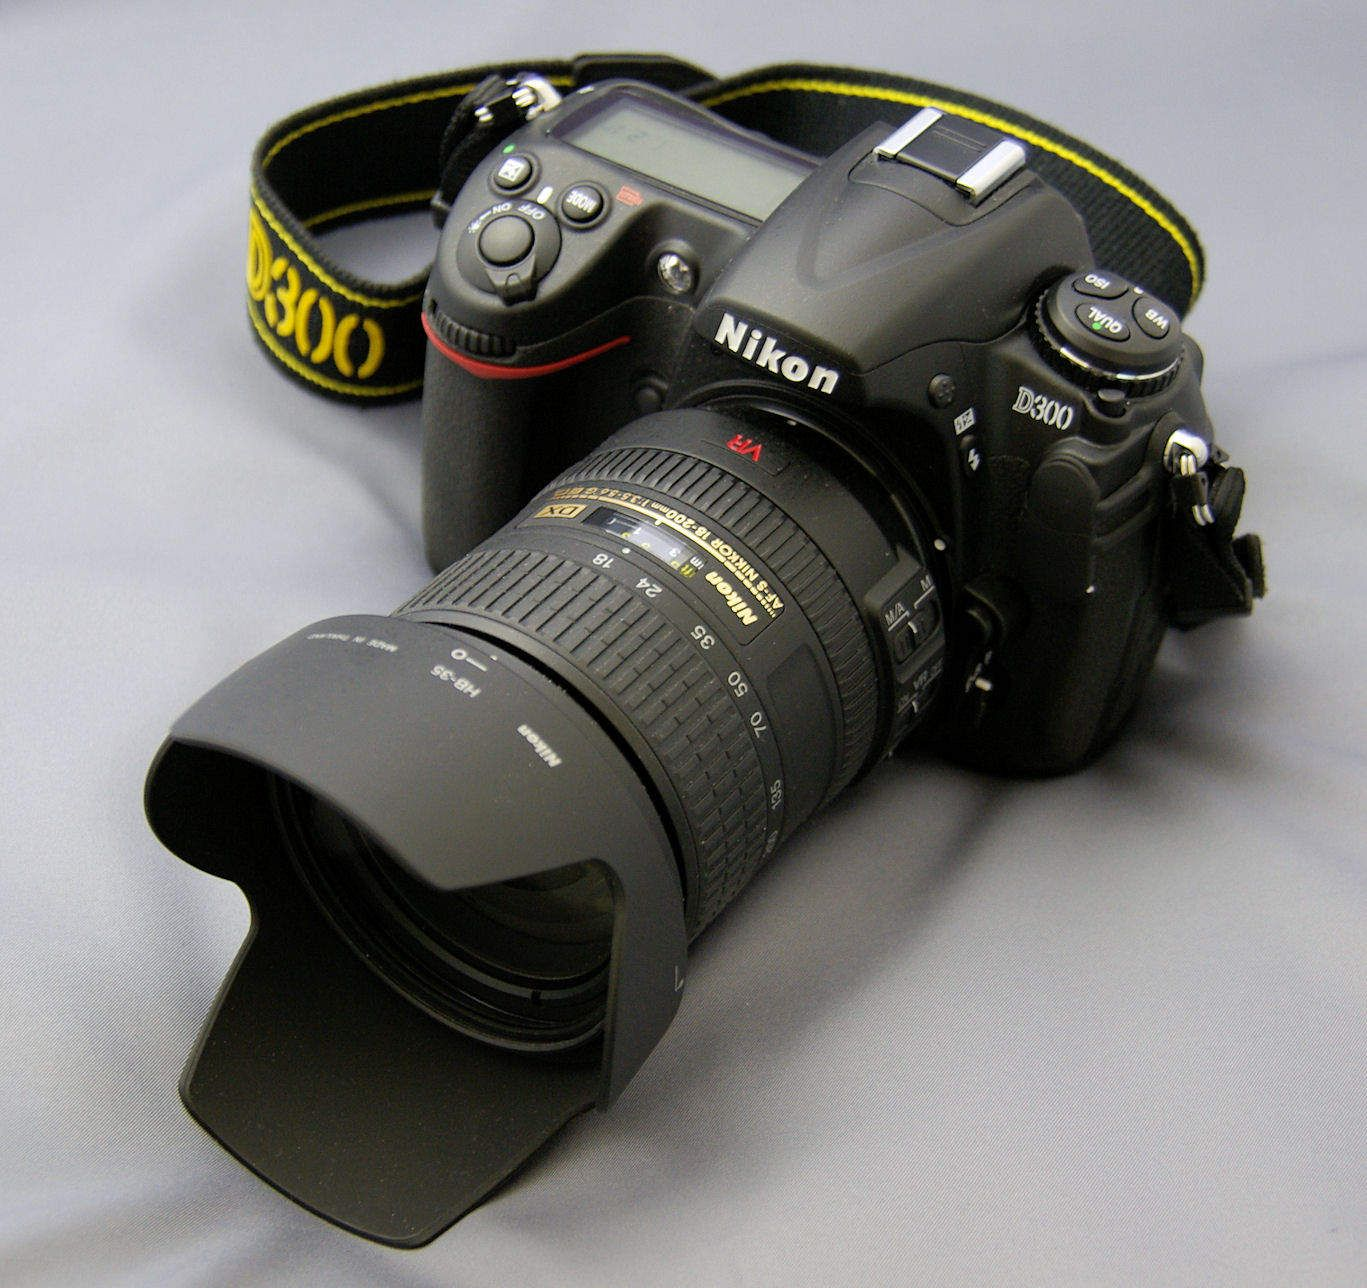 Camera Nikkon Dslr Camera nikon dslr camera wallpaper google pinterest google